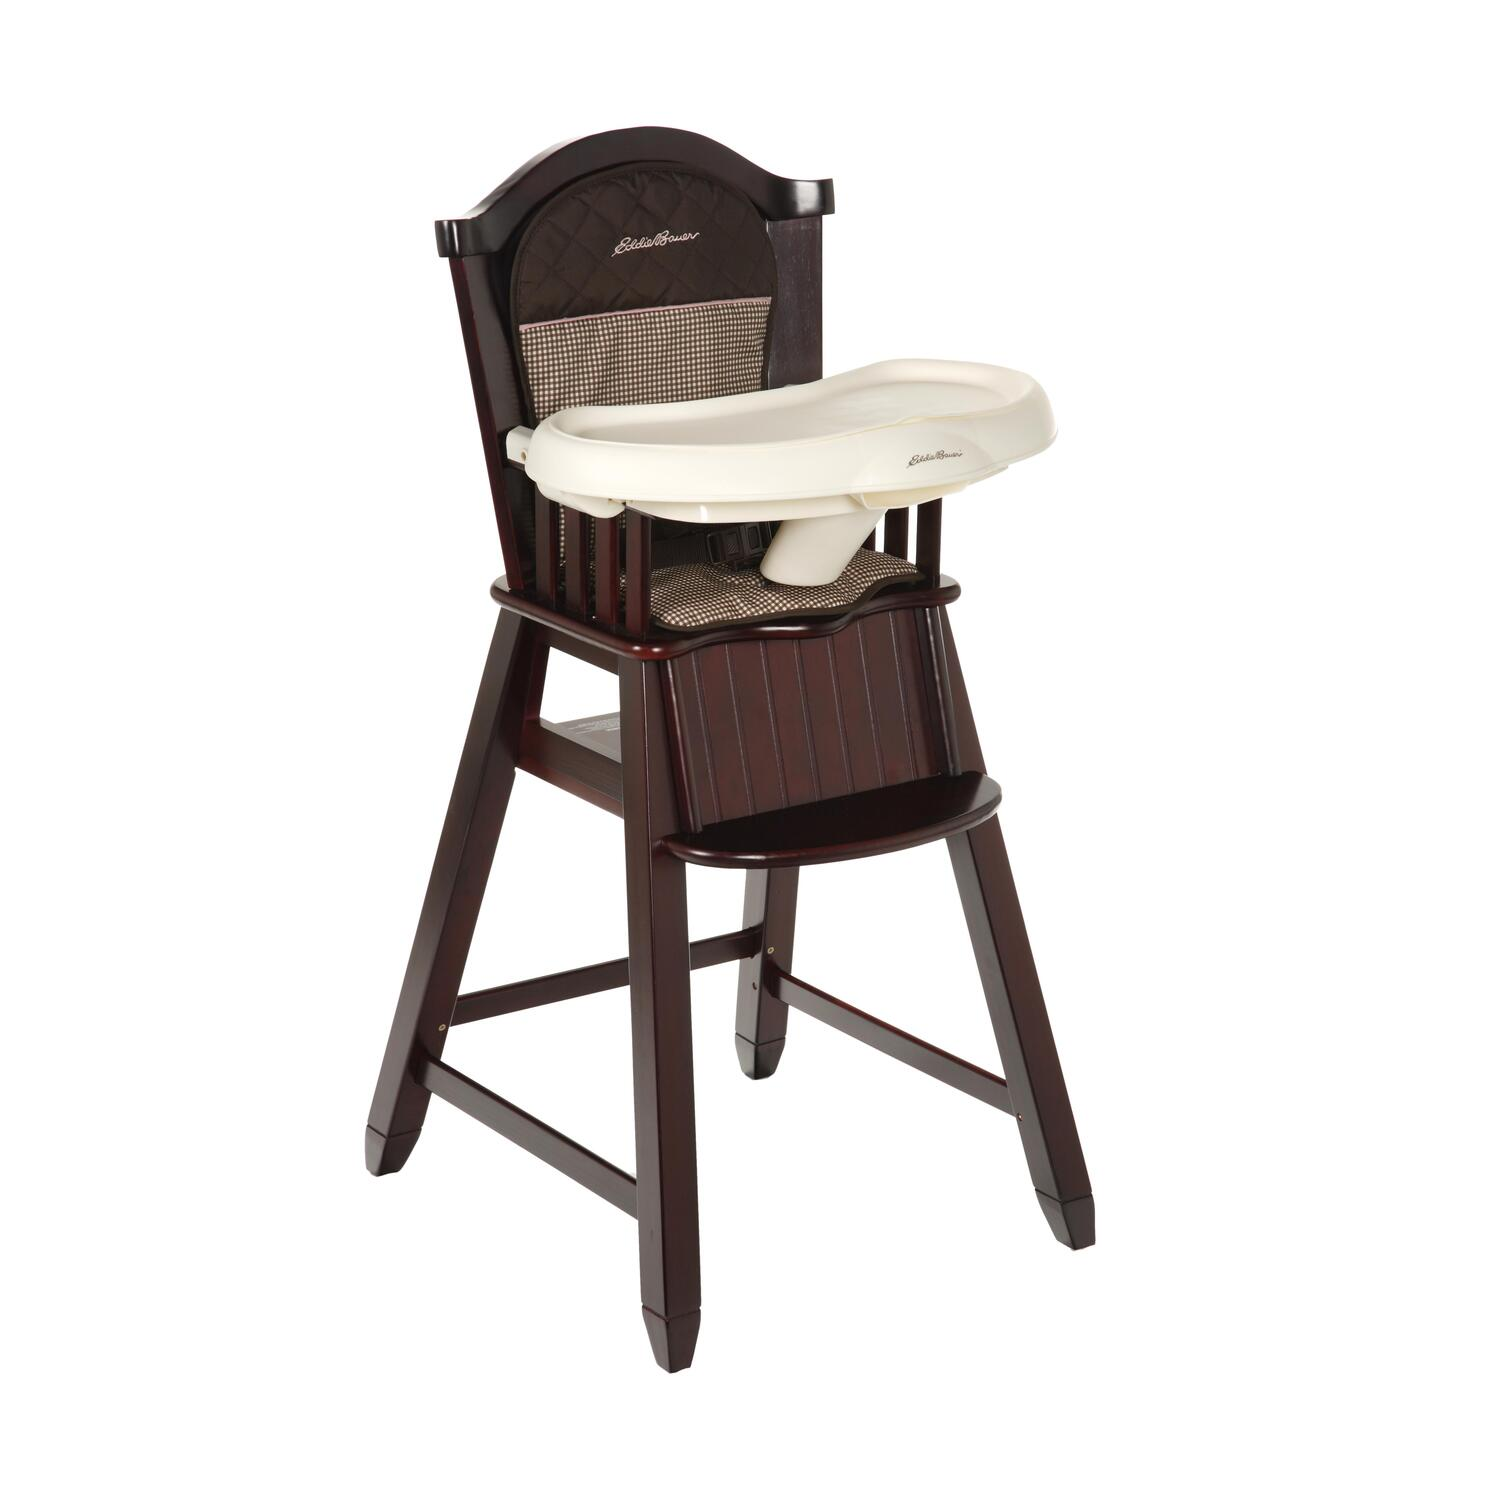 Cherry Wood Eddie Bauer Cherry Wood High Chair